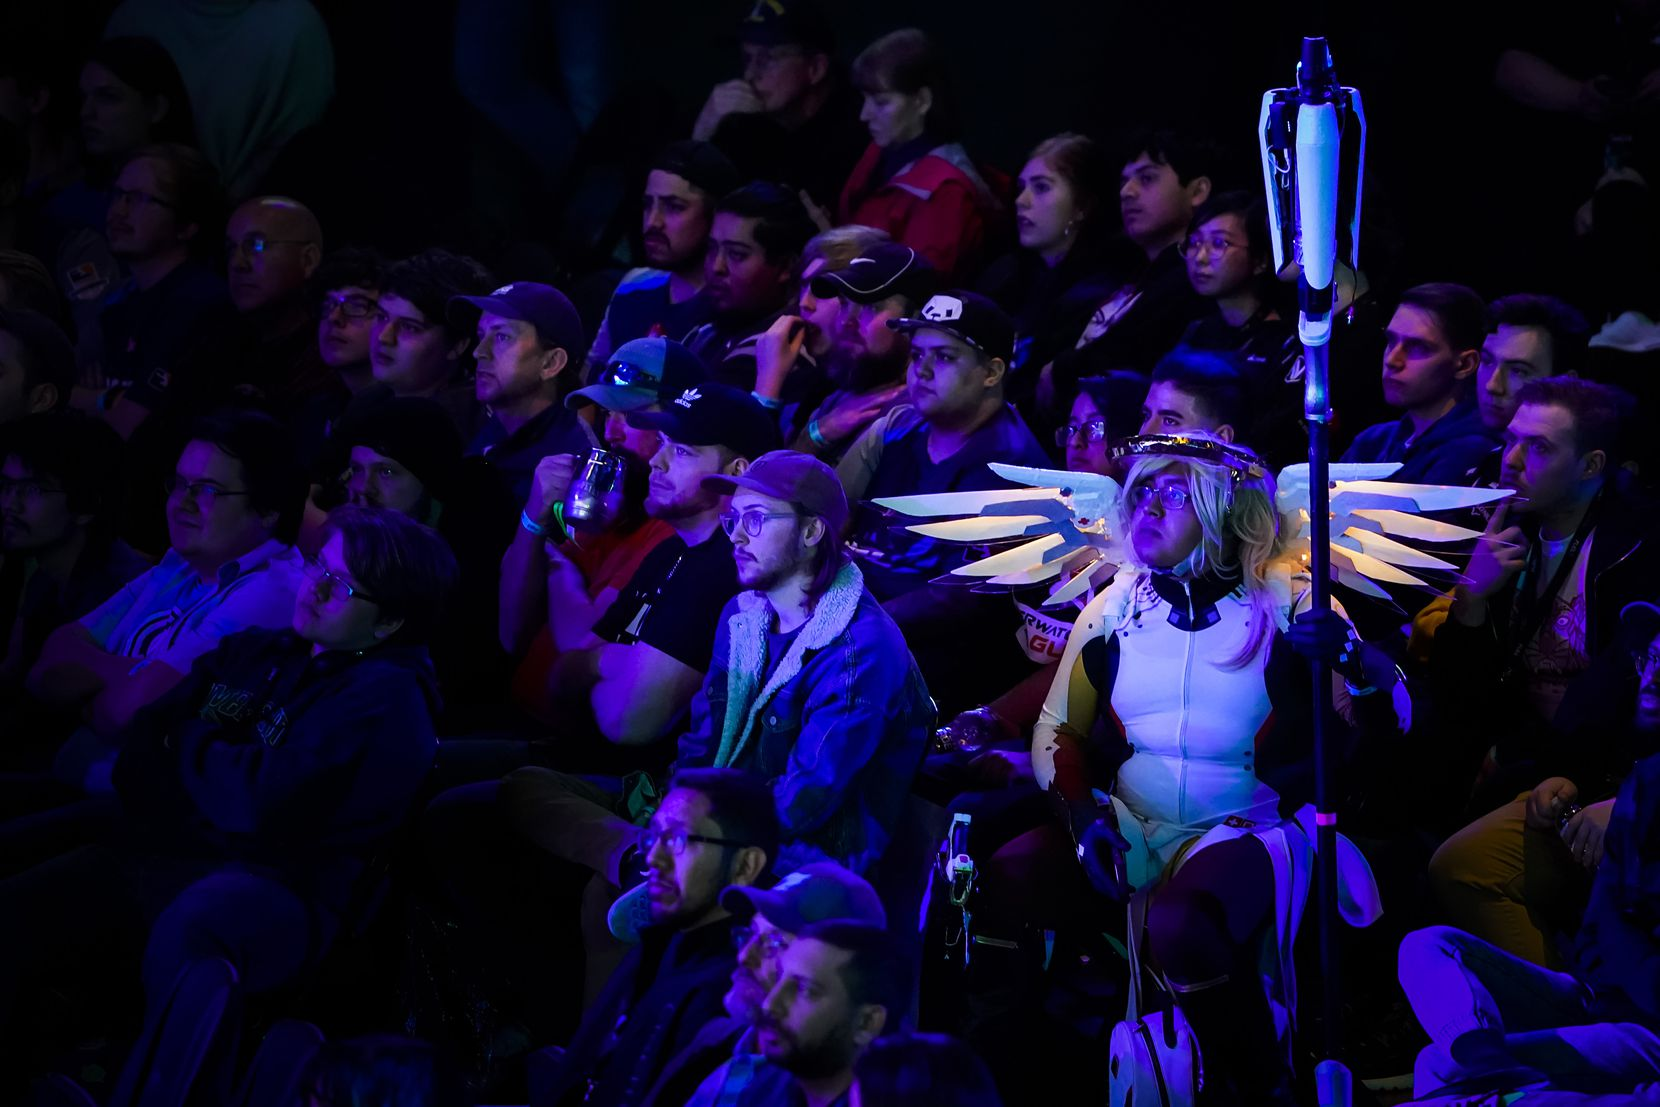 Dallas Fuel fans watch during a Overwatch League match against the Los Angeles Valiant at the Arlington Esports Stadium on Saturday, Feb. 8, 2020, in Arlington.